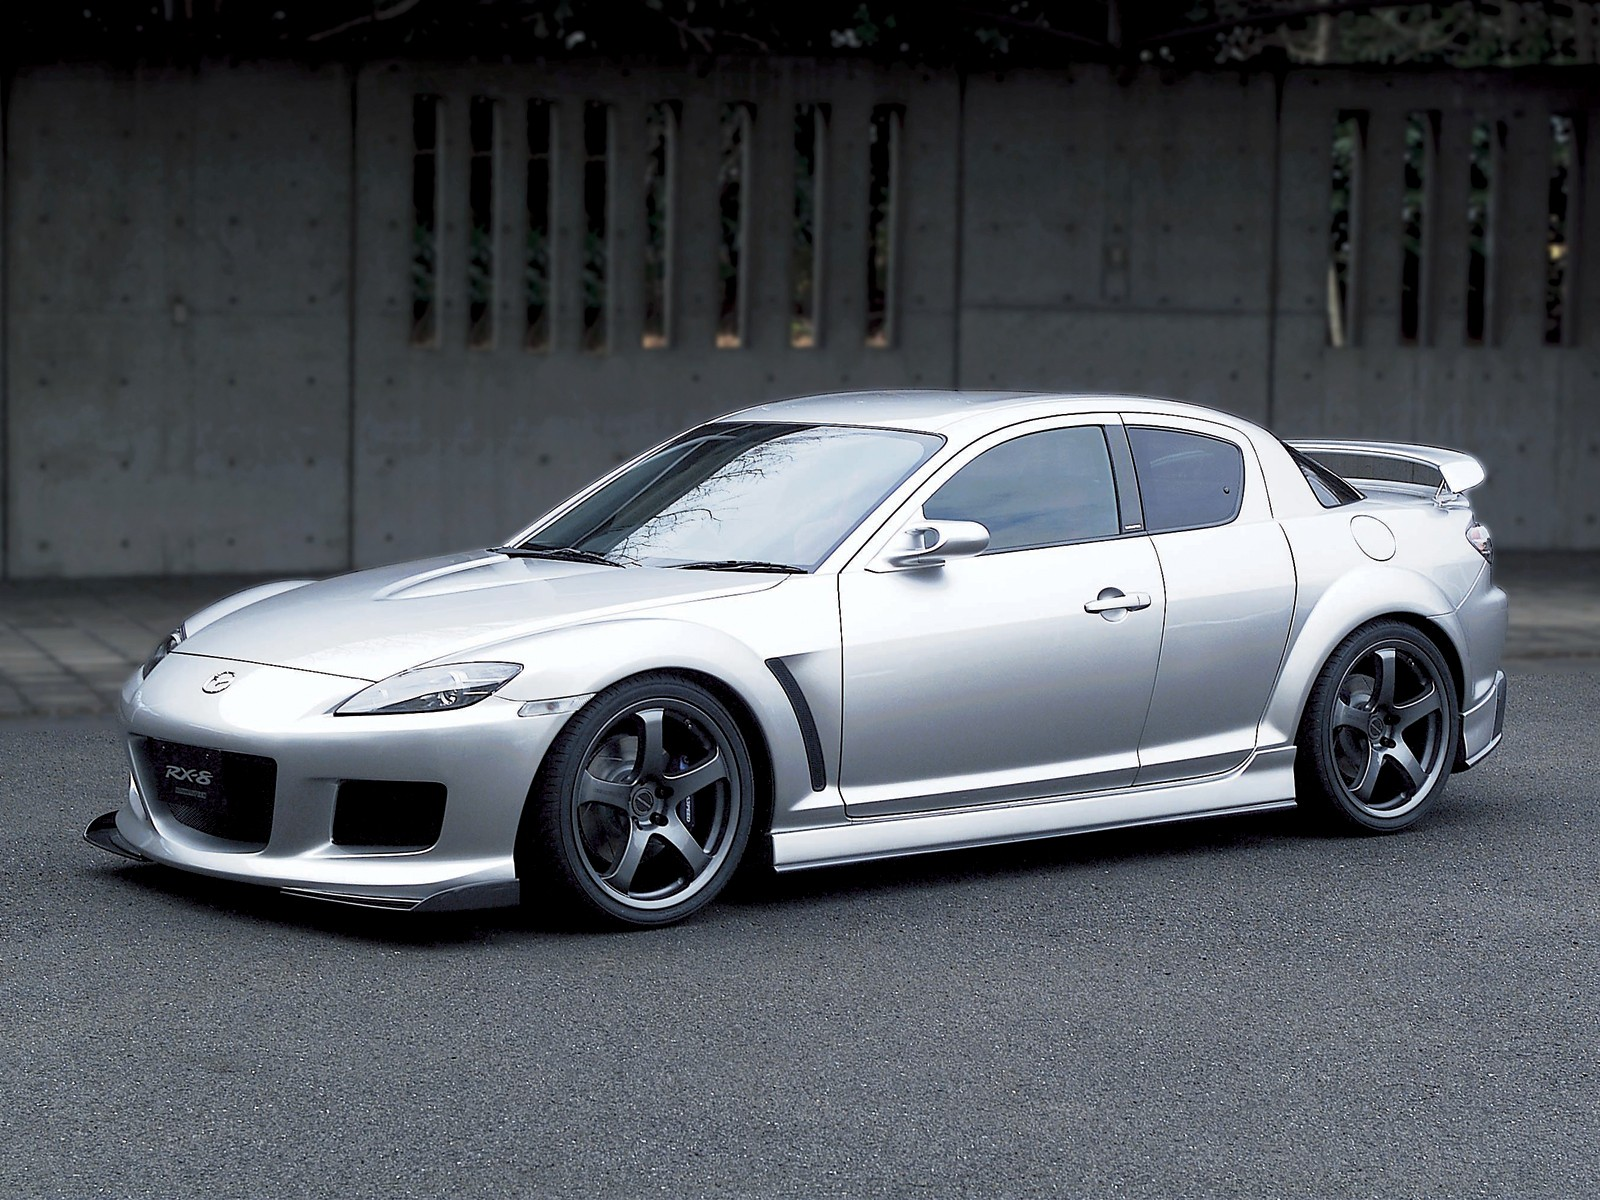 mazda rx-8 contest technical details, history, photos on better